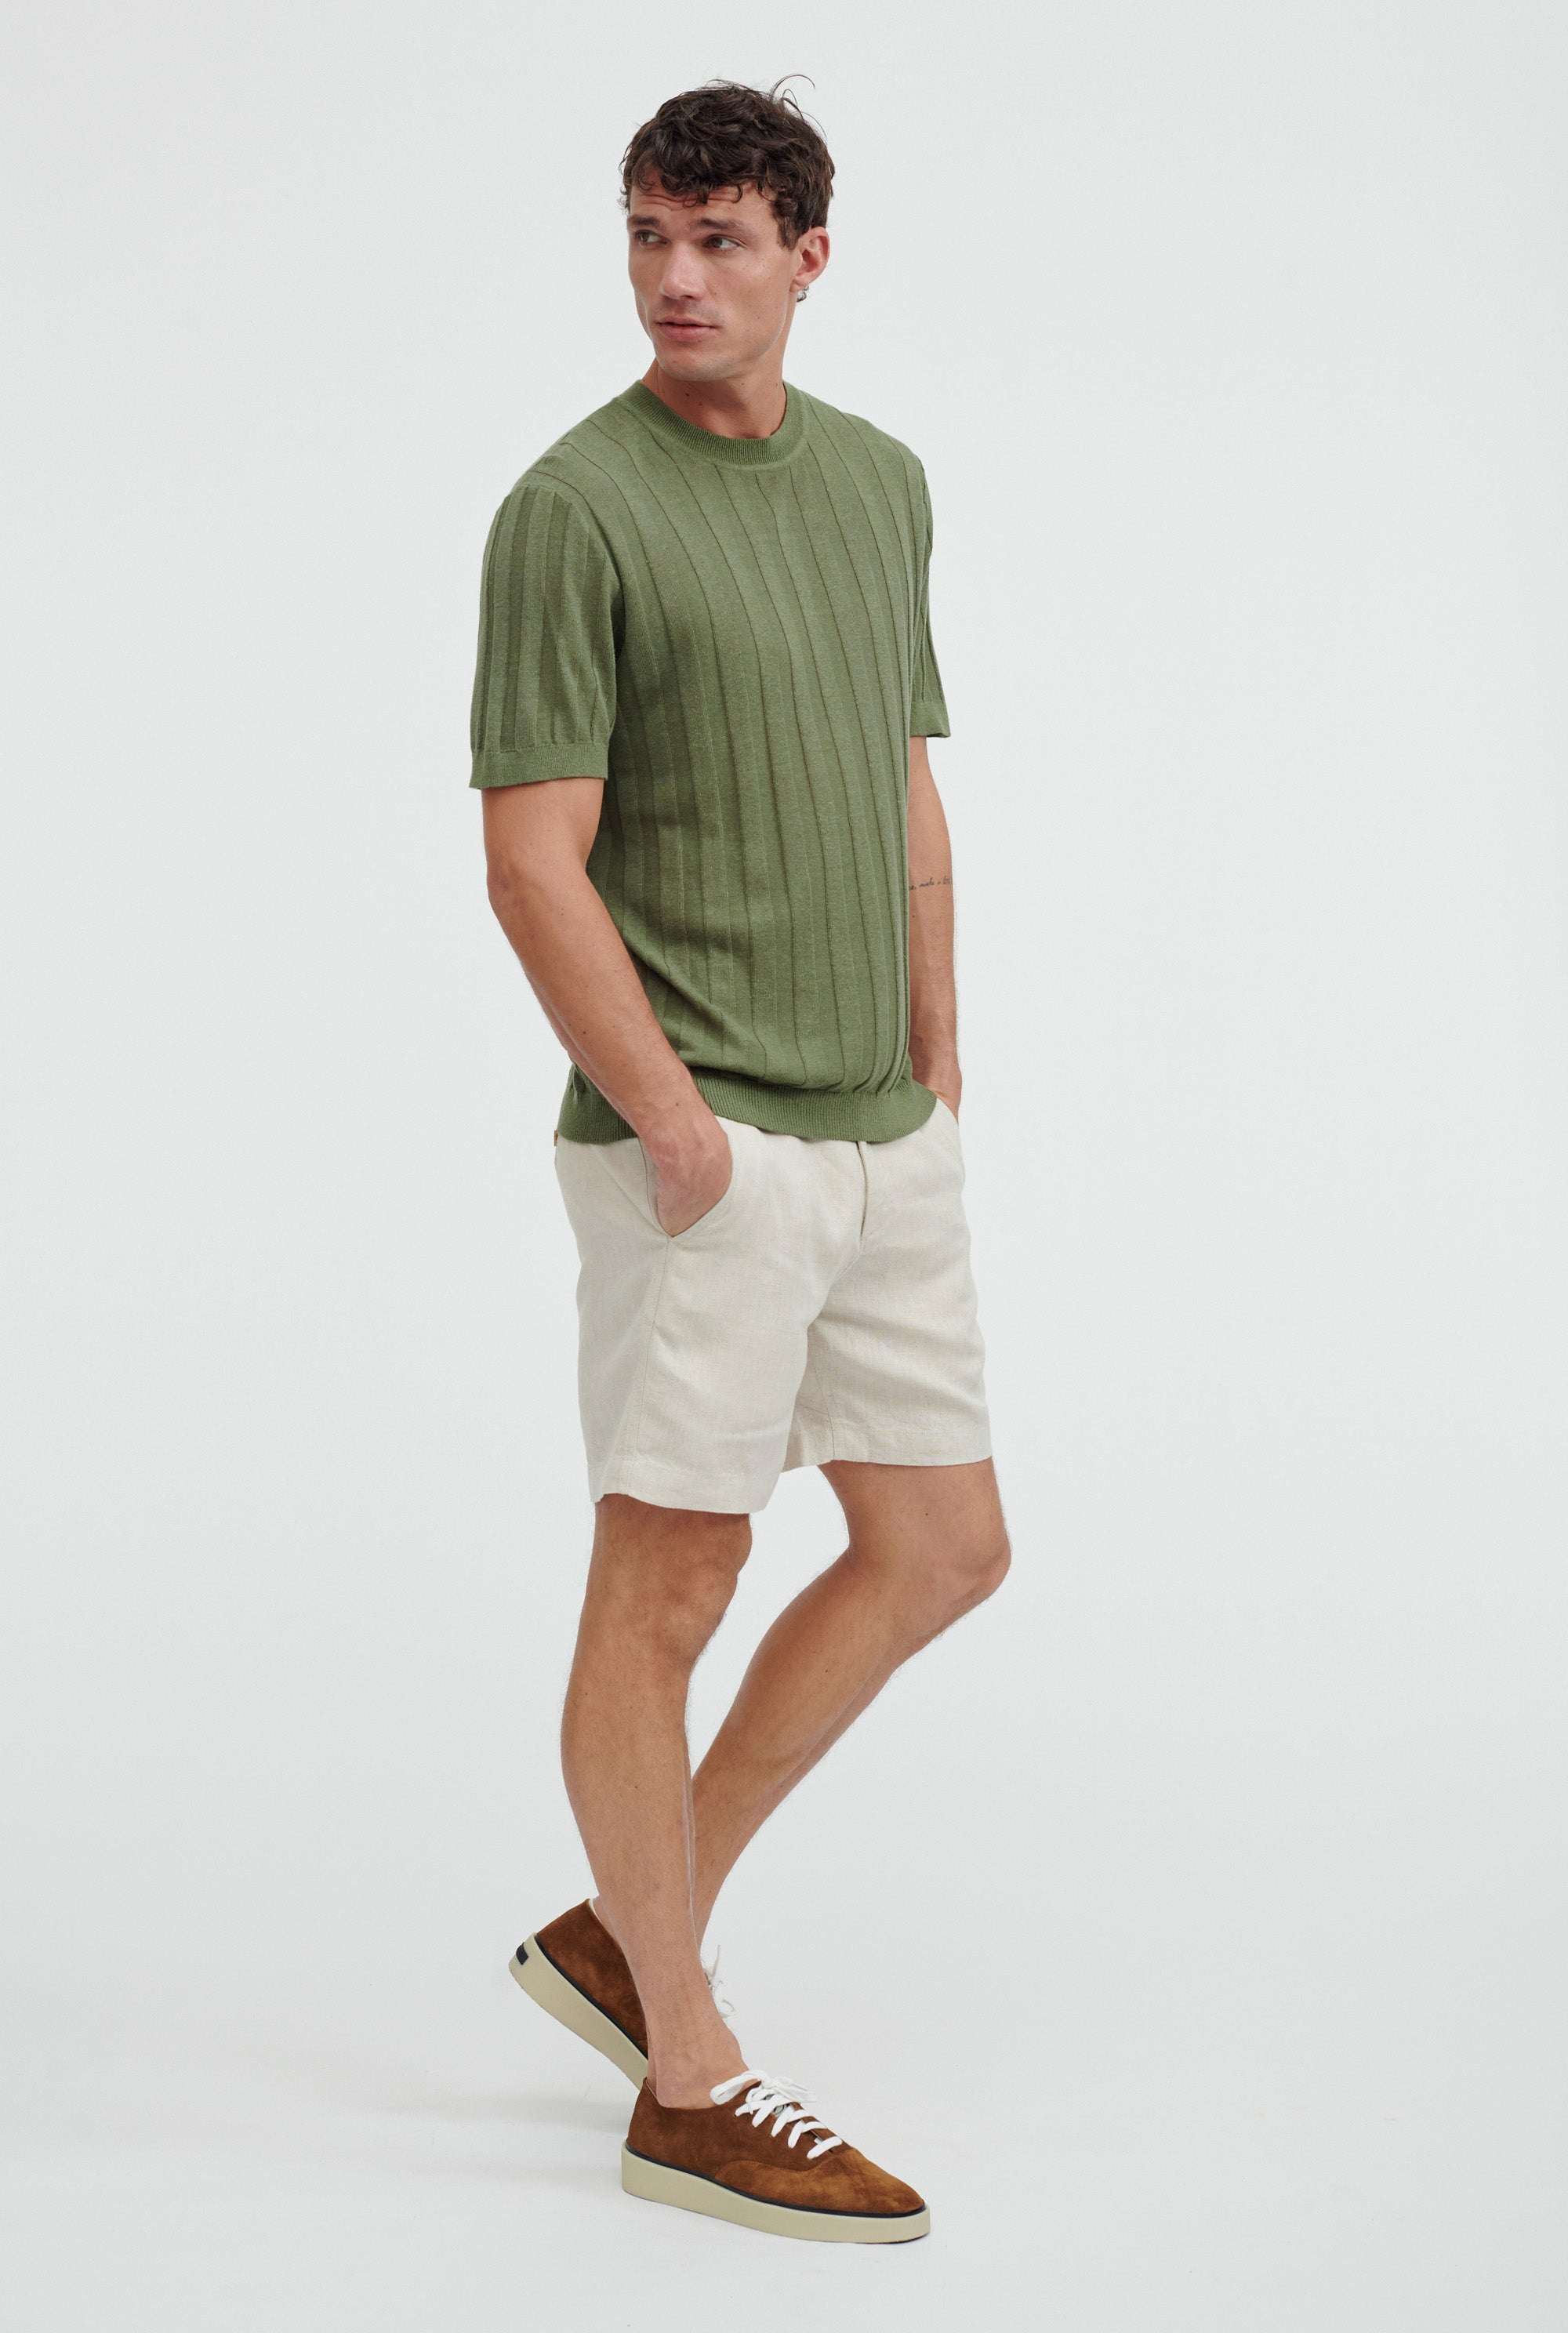 Short Sleeve Knitted Rib Stripe T-Shirt - Signature Green